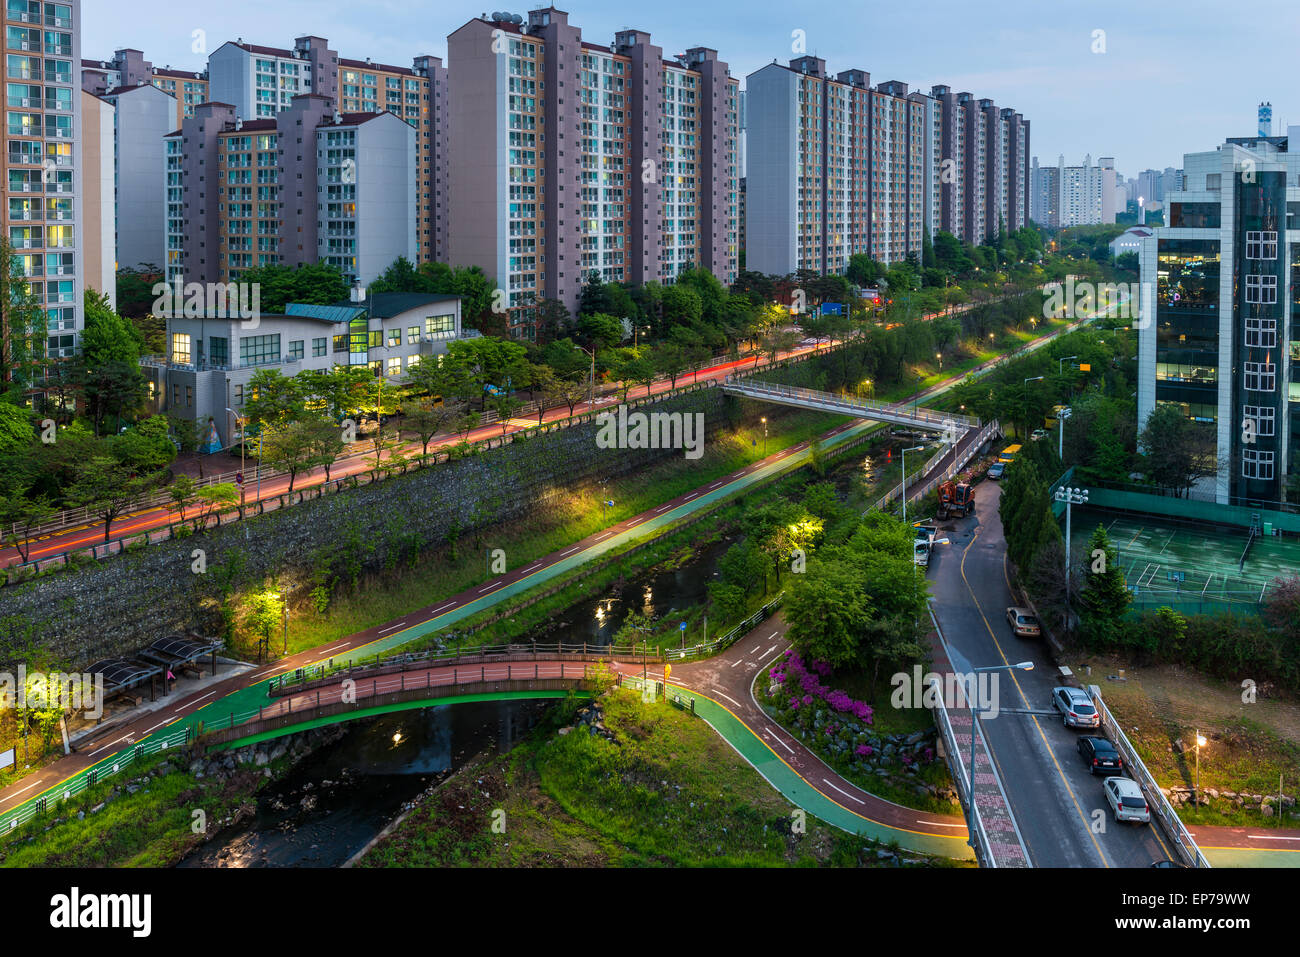 Urban scenic of a pathway and river cutting through the suburbs of Seoul, South Korea. - Stock Image